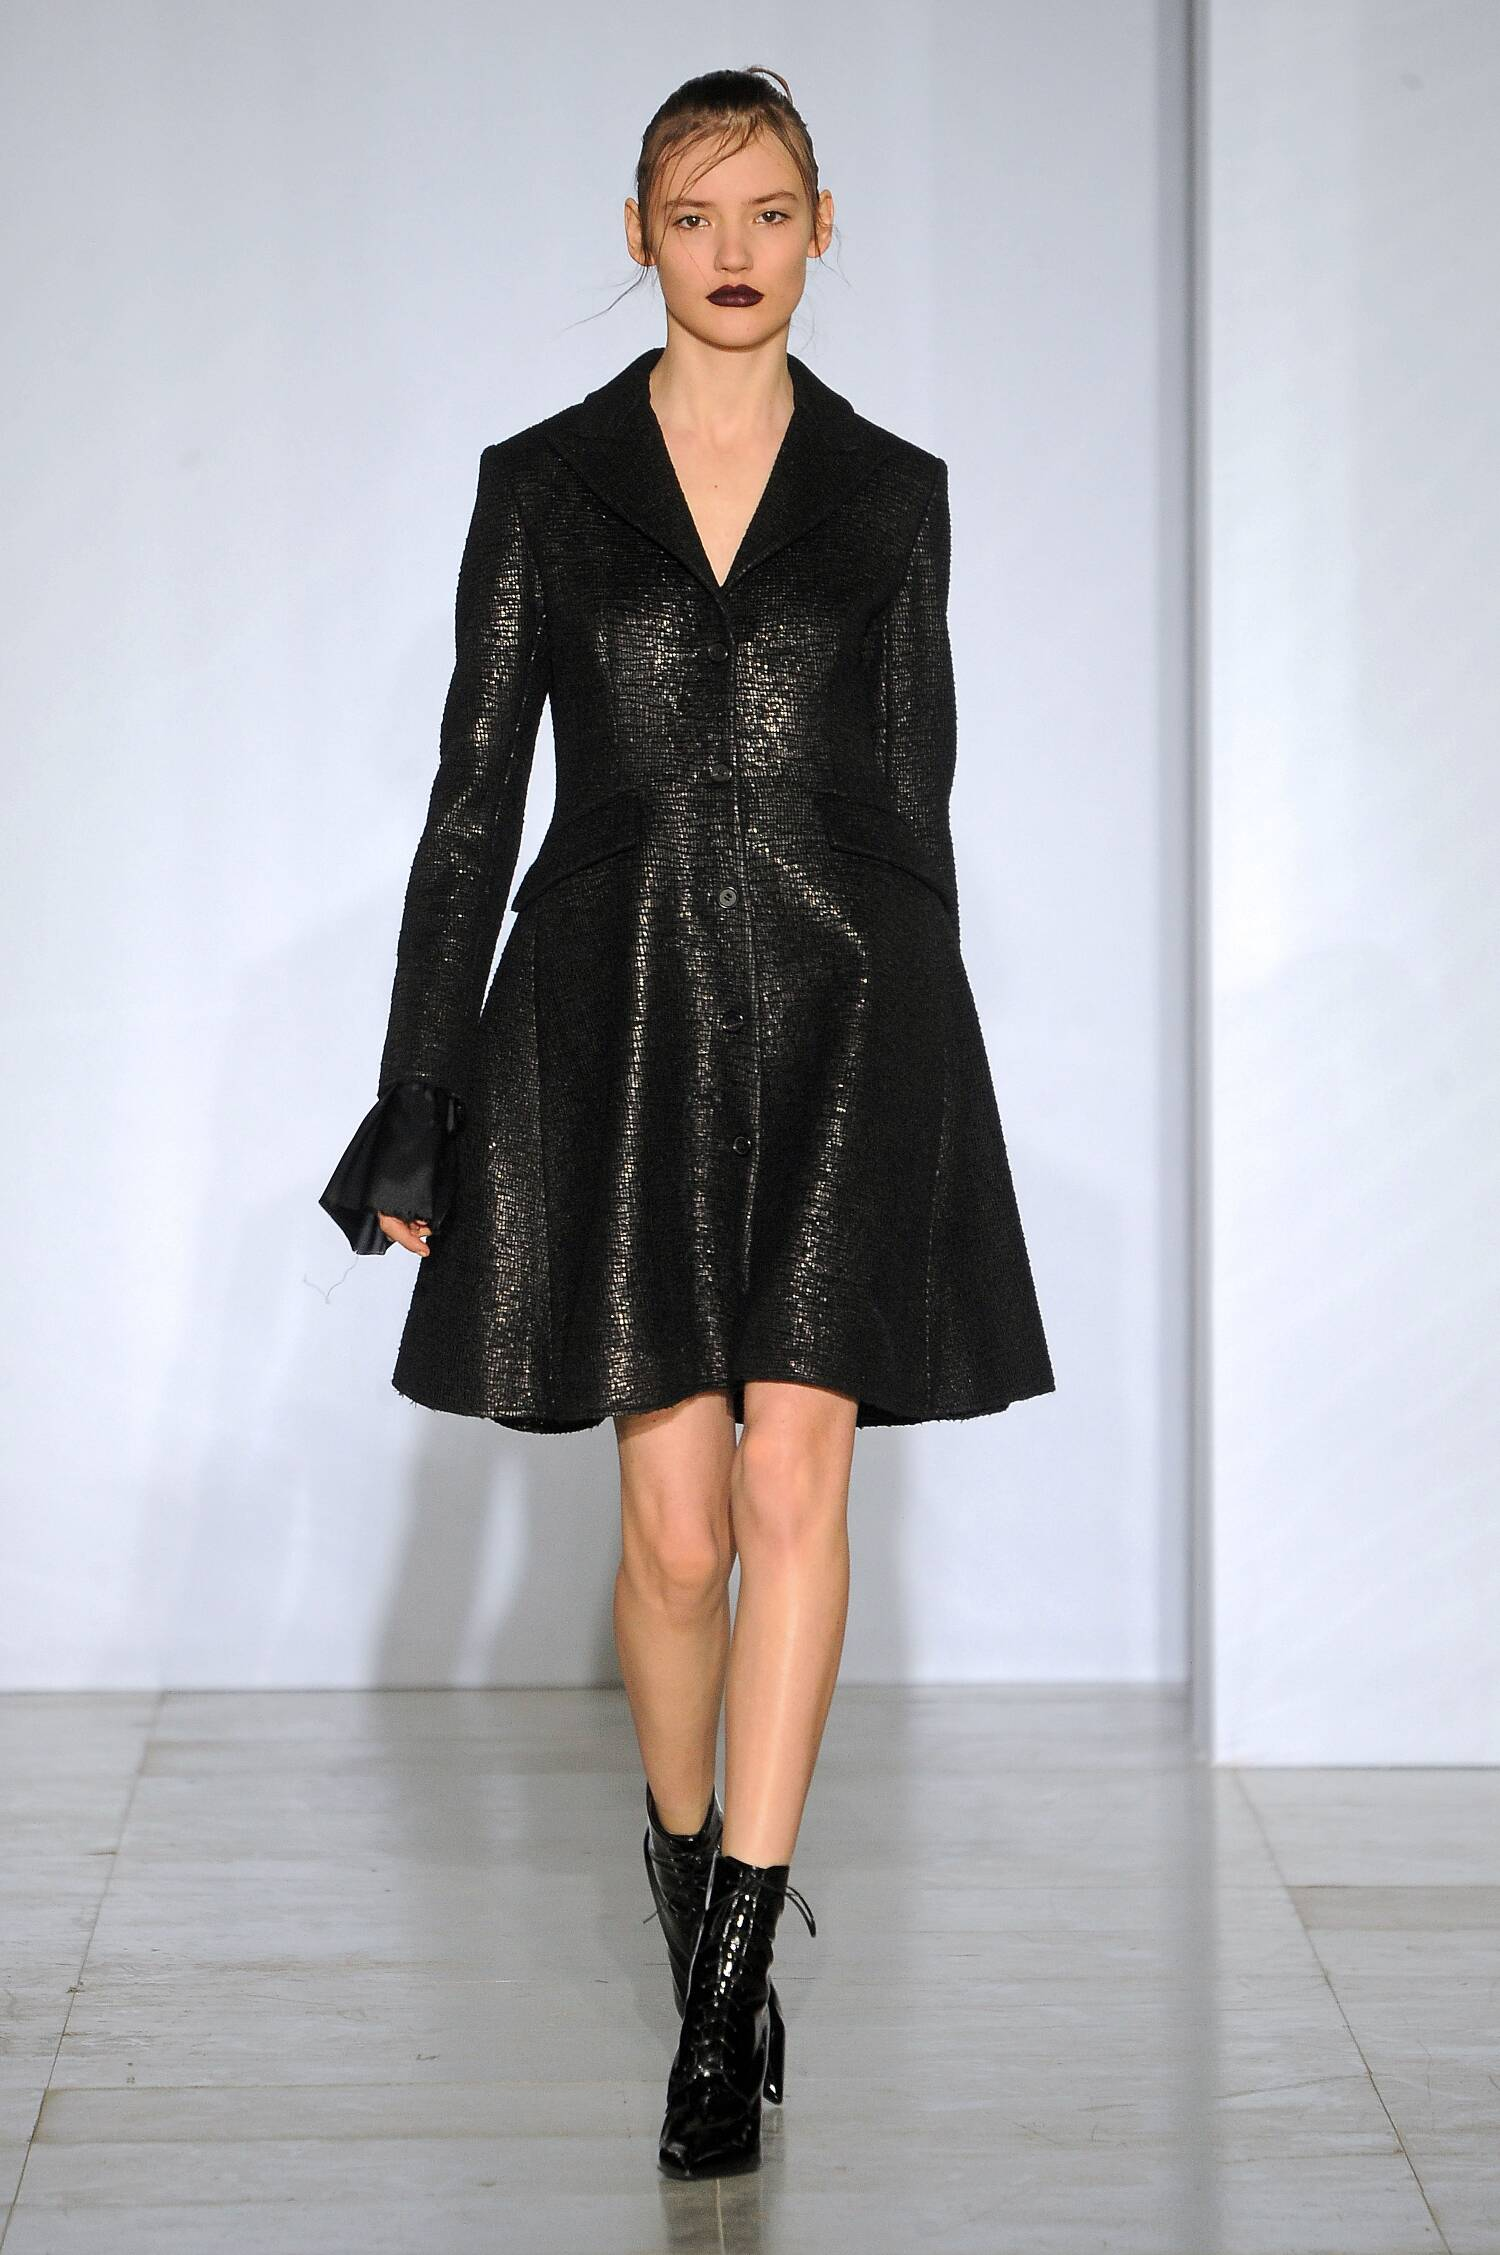 Winter Trends 2015 Yang Li Collection